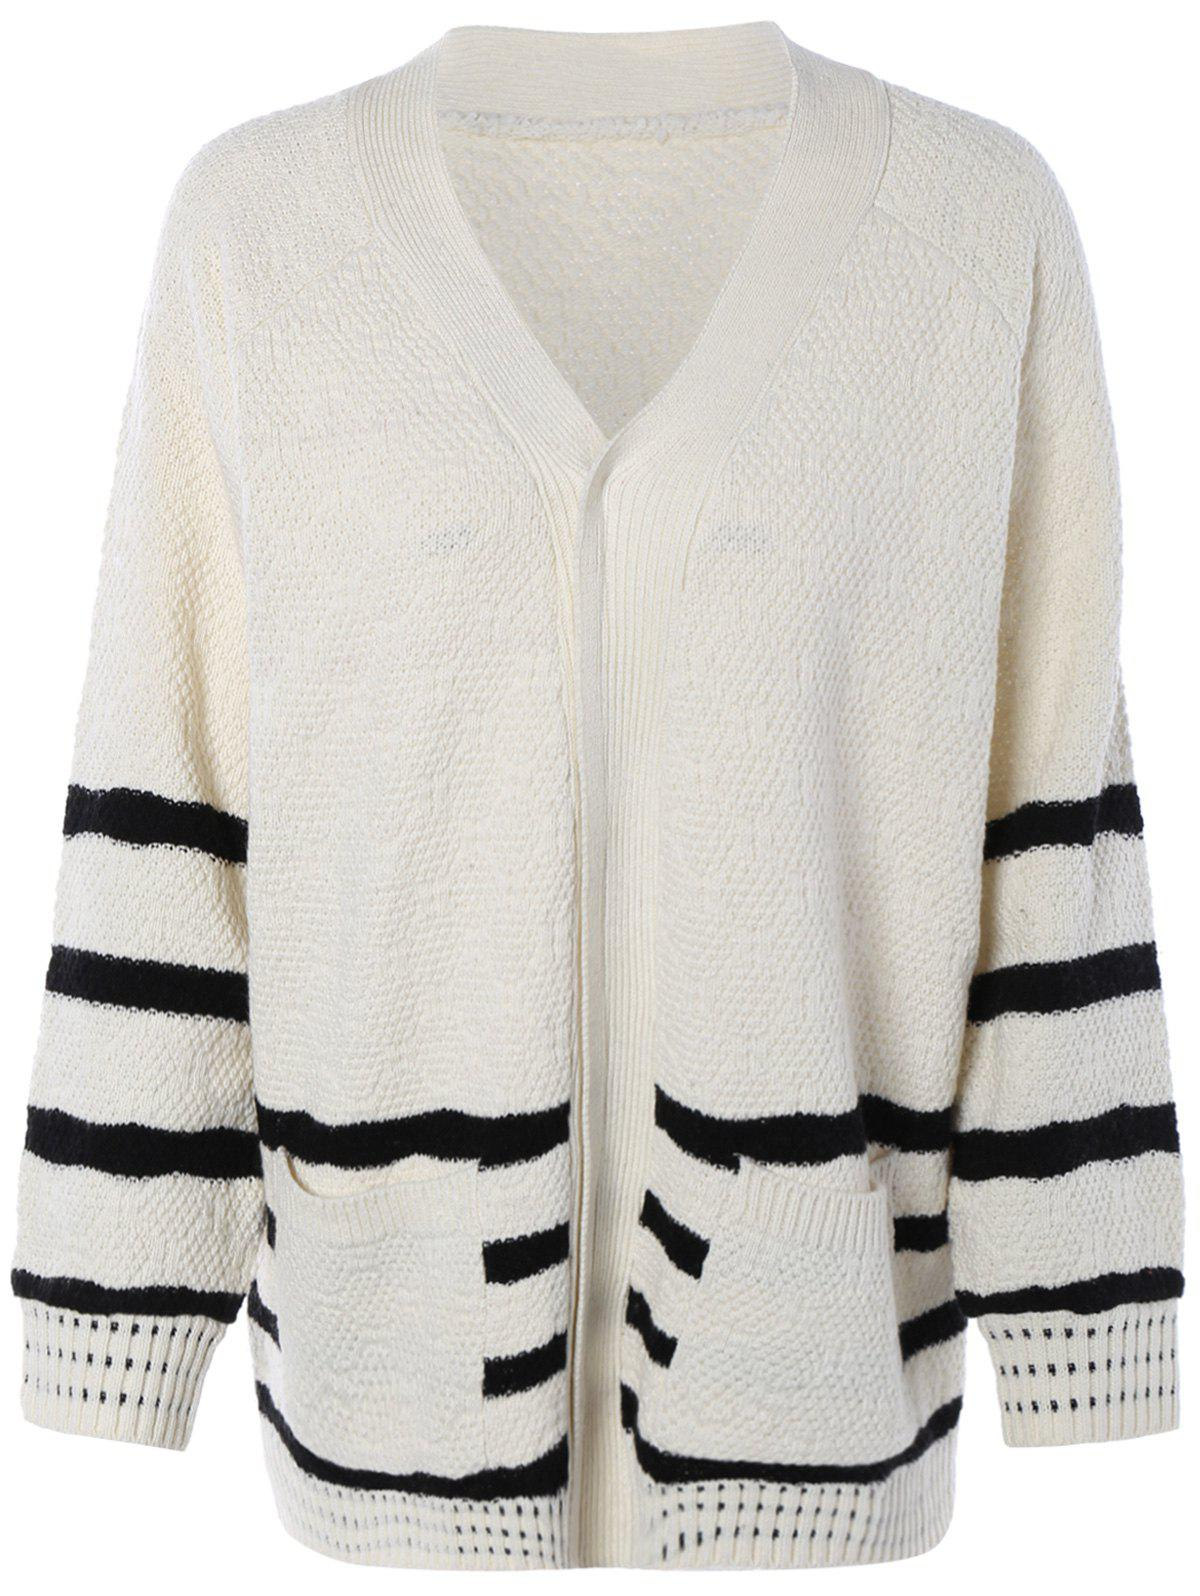 V-Neck Striped Pocket Design Sweater